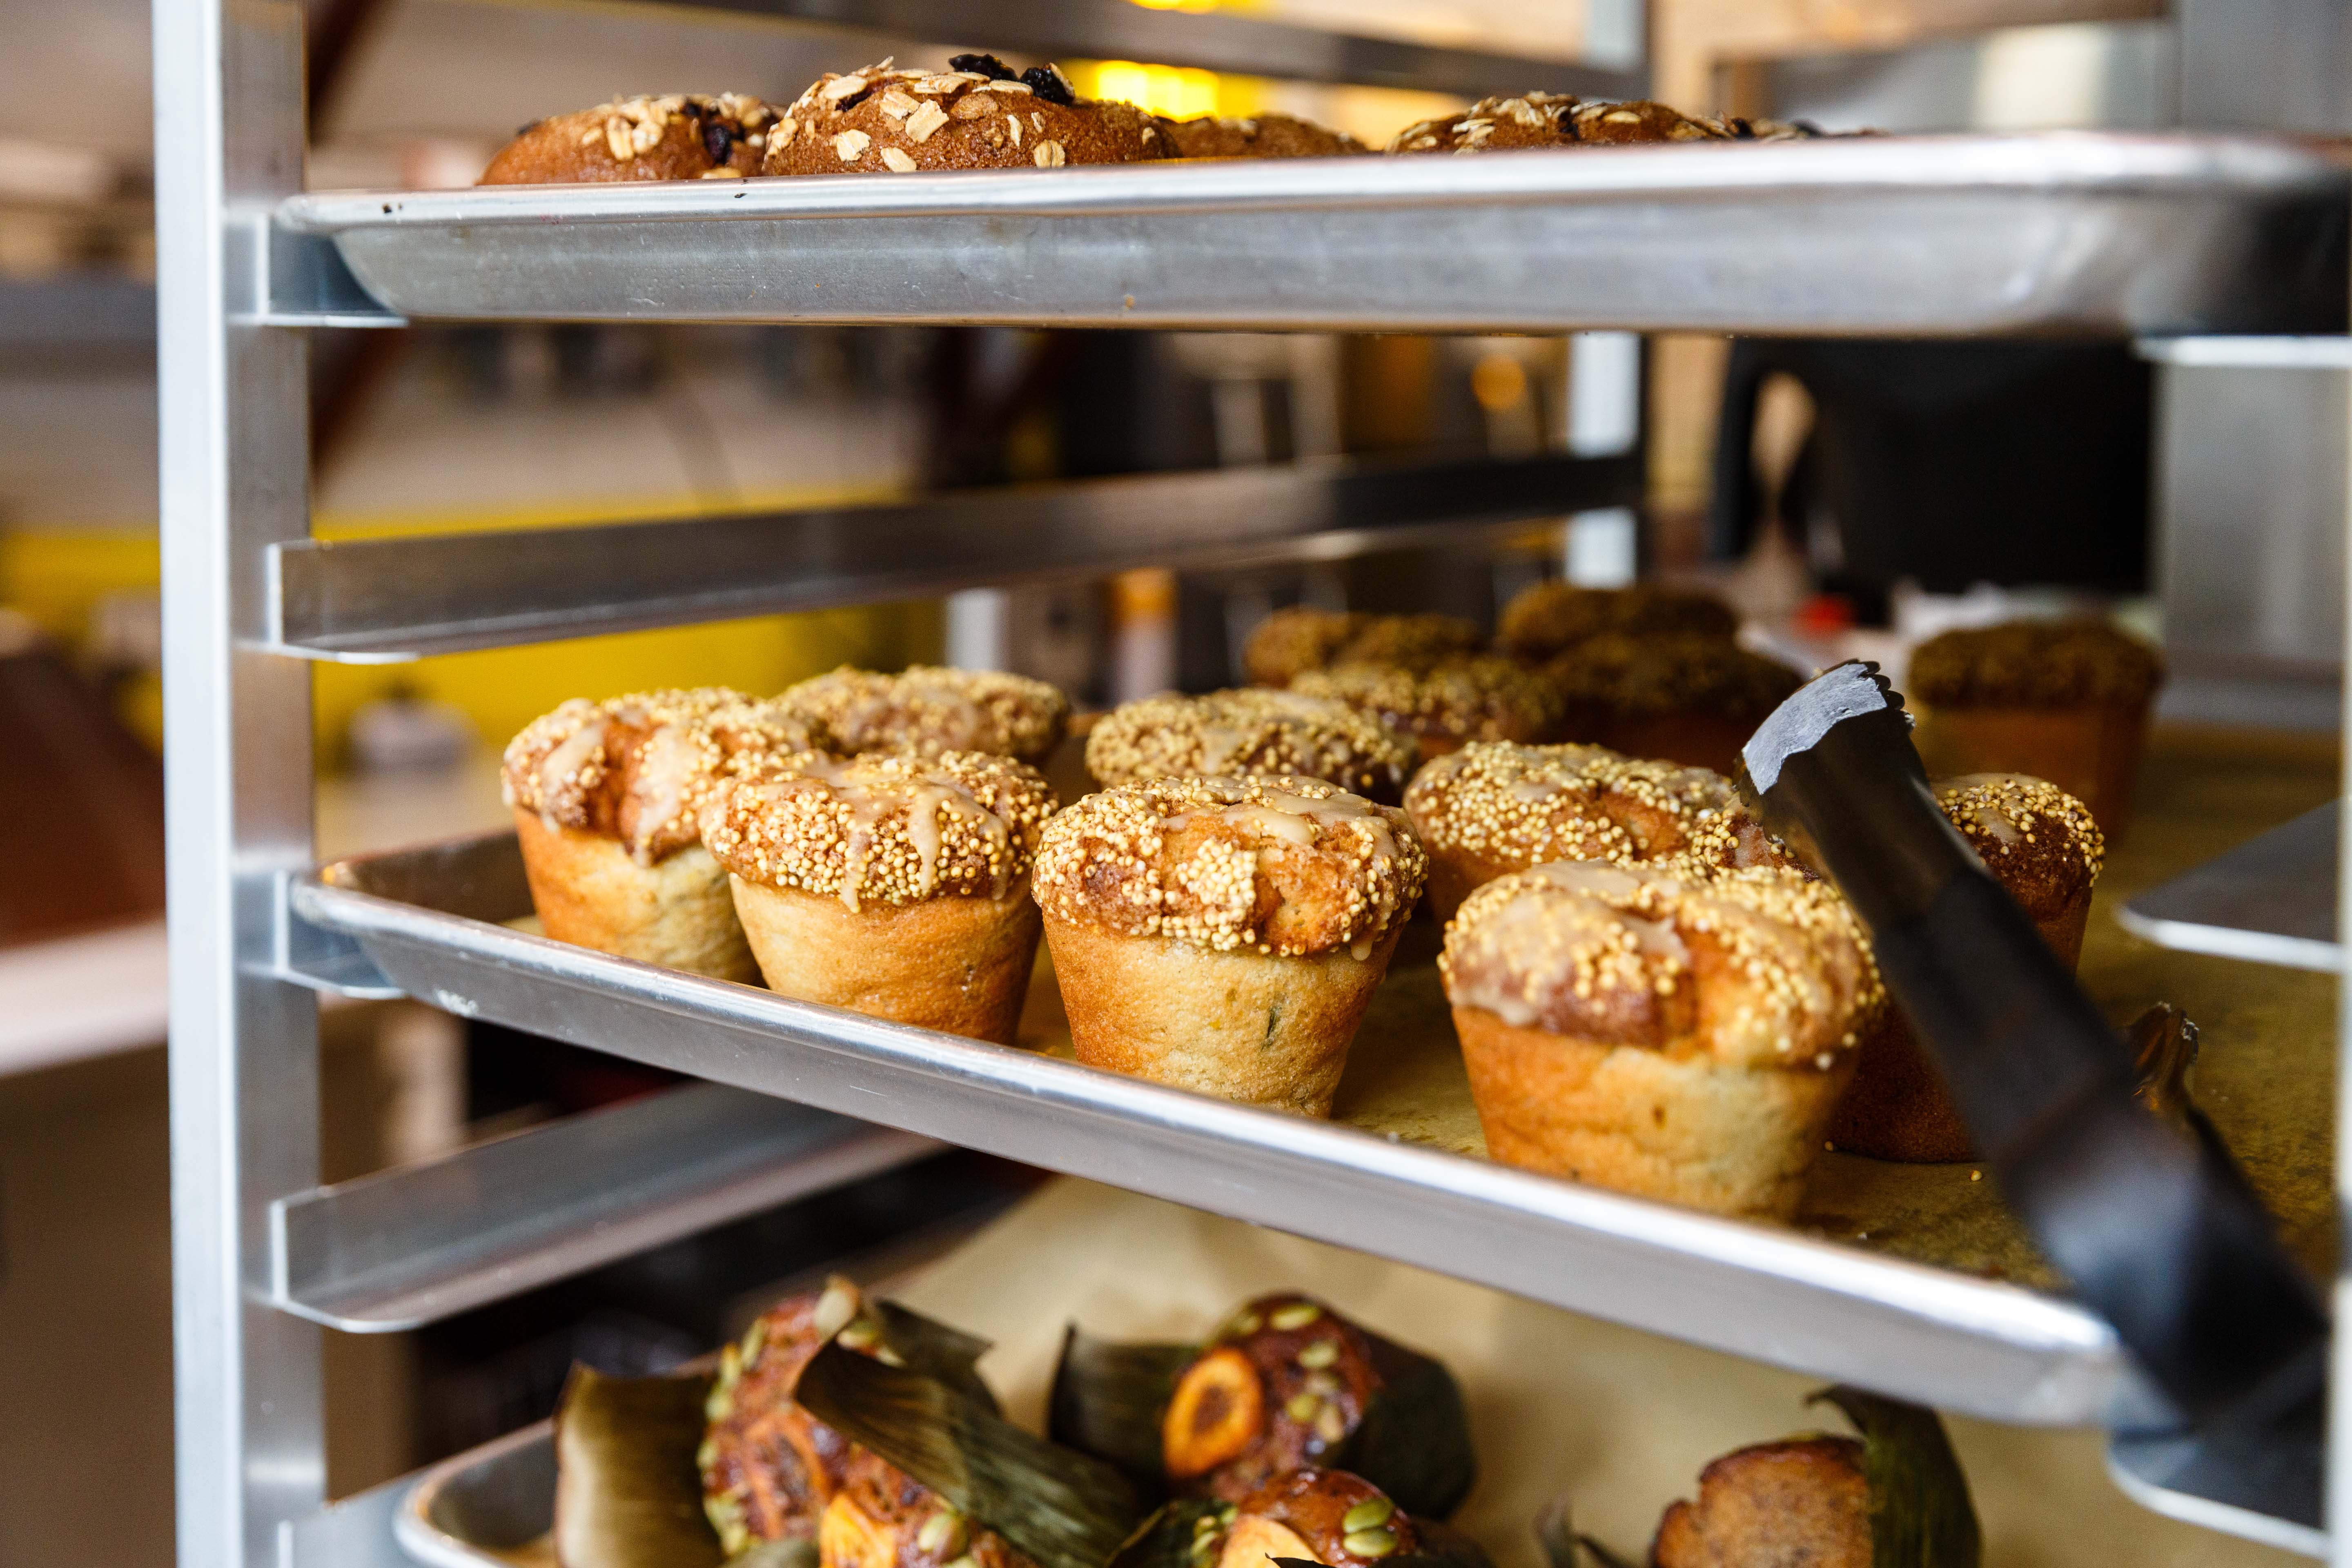 Three trays of muffins rest on a multi-tiered baking tray in a restaurant